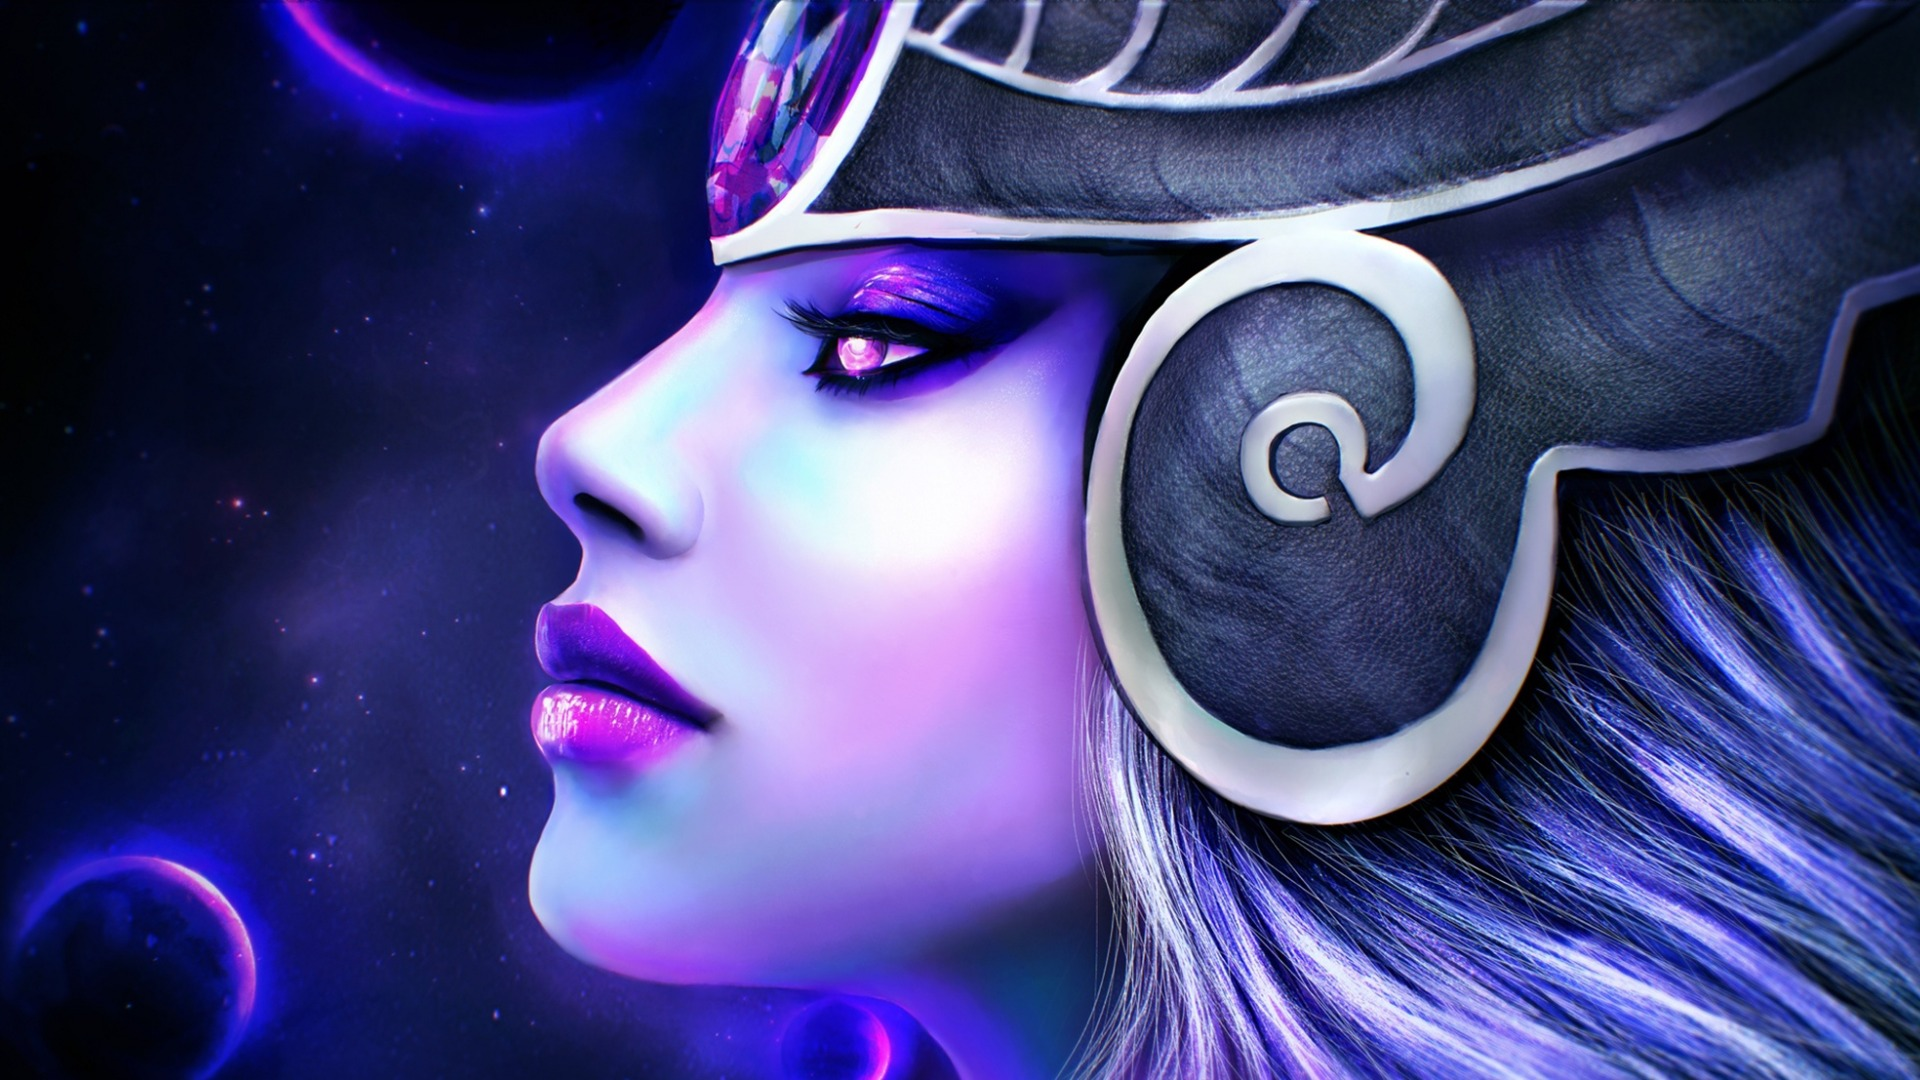 General 1920x1080 face fantasy art fantasy girl Syndra League of Legends